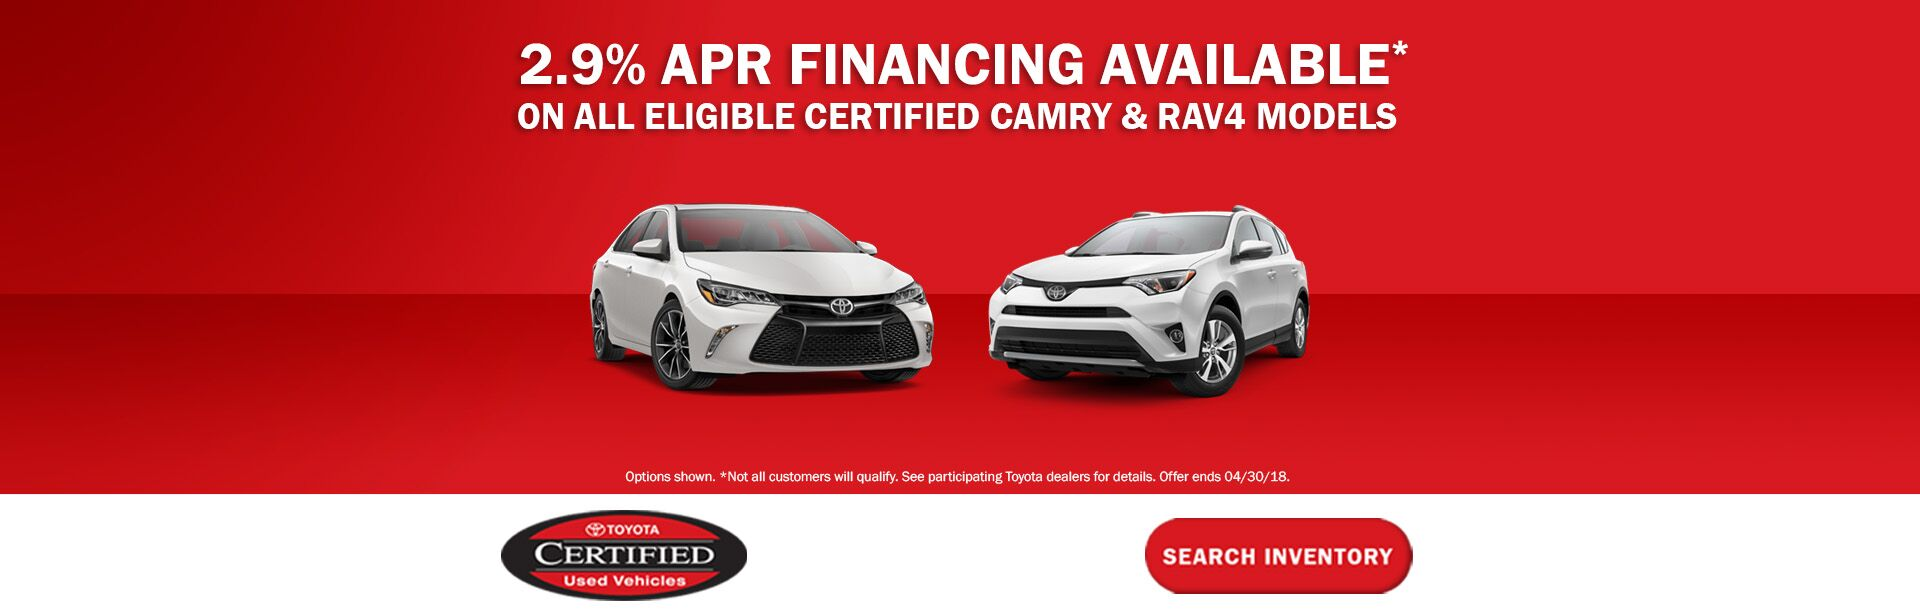 Toyota Dealers In Ky 2019 2020 New Car Release Date